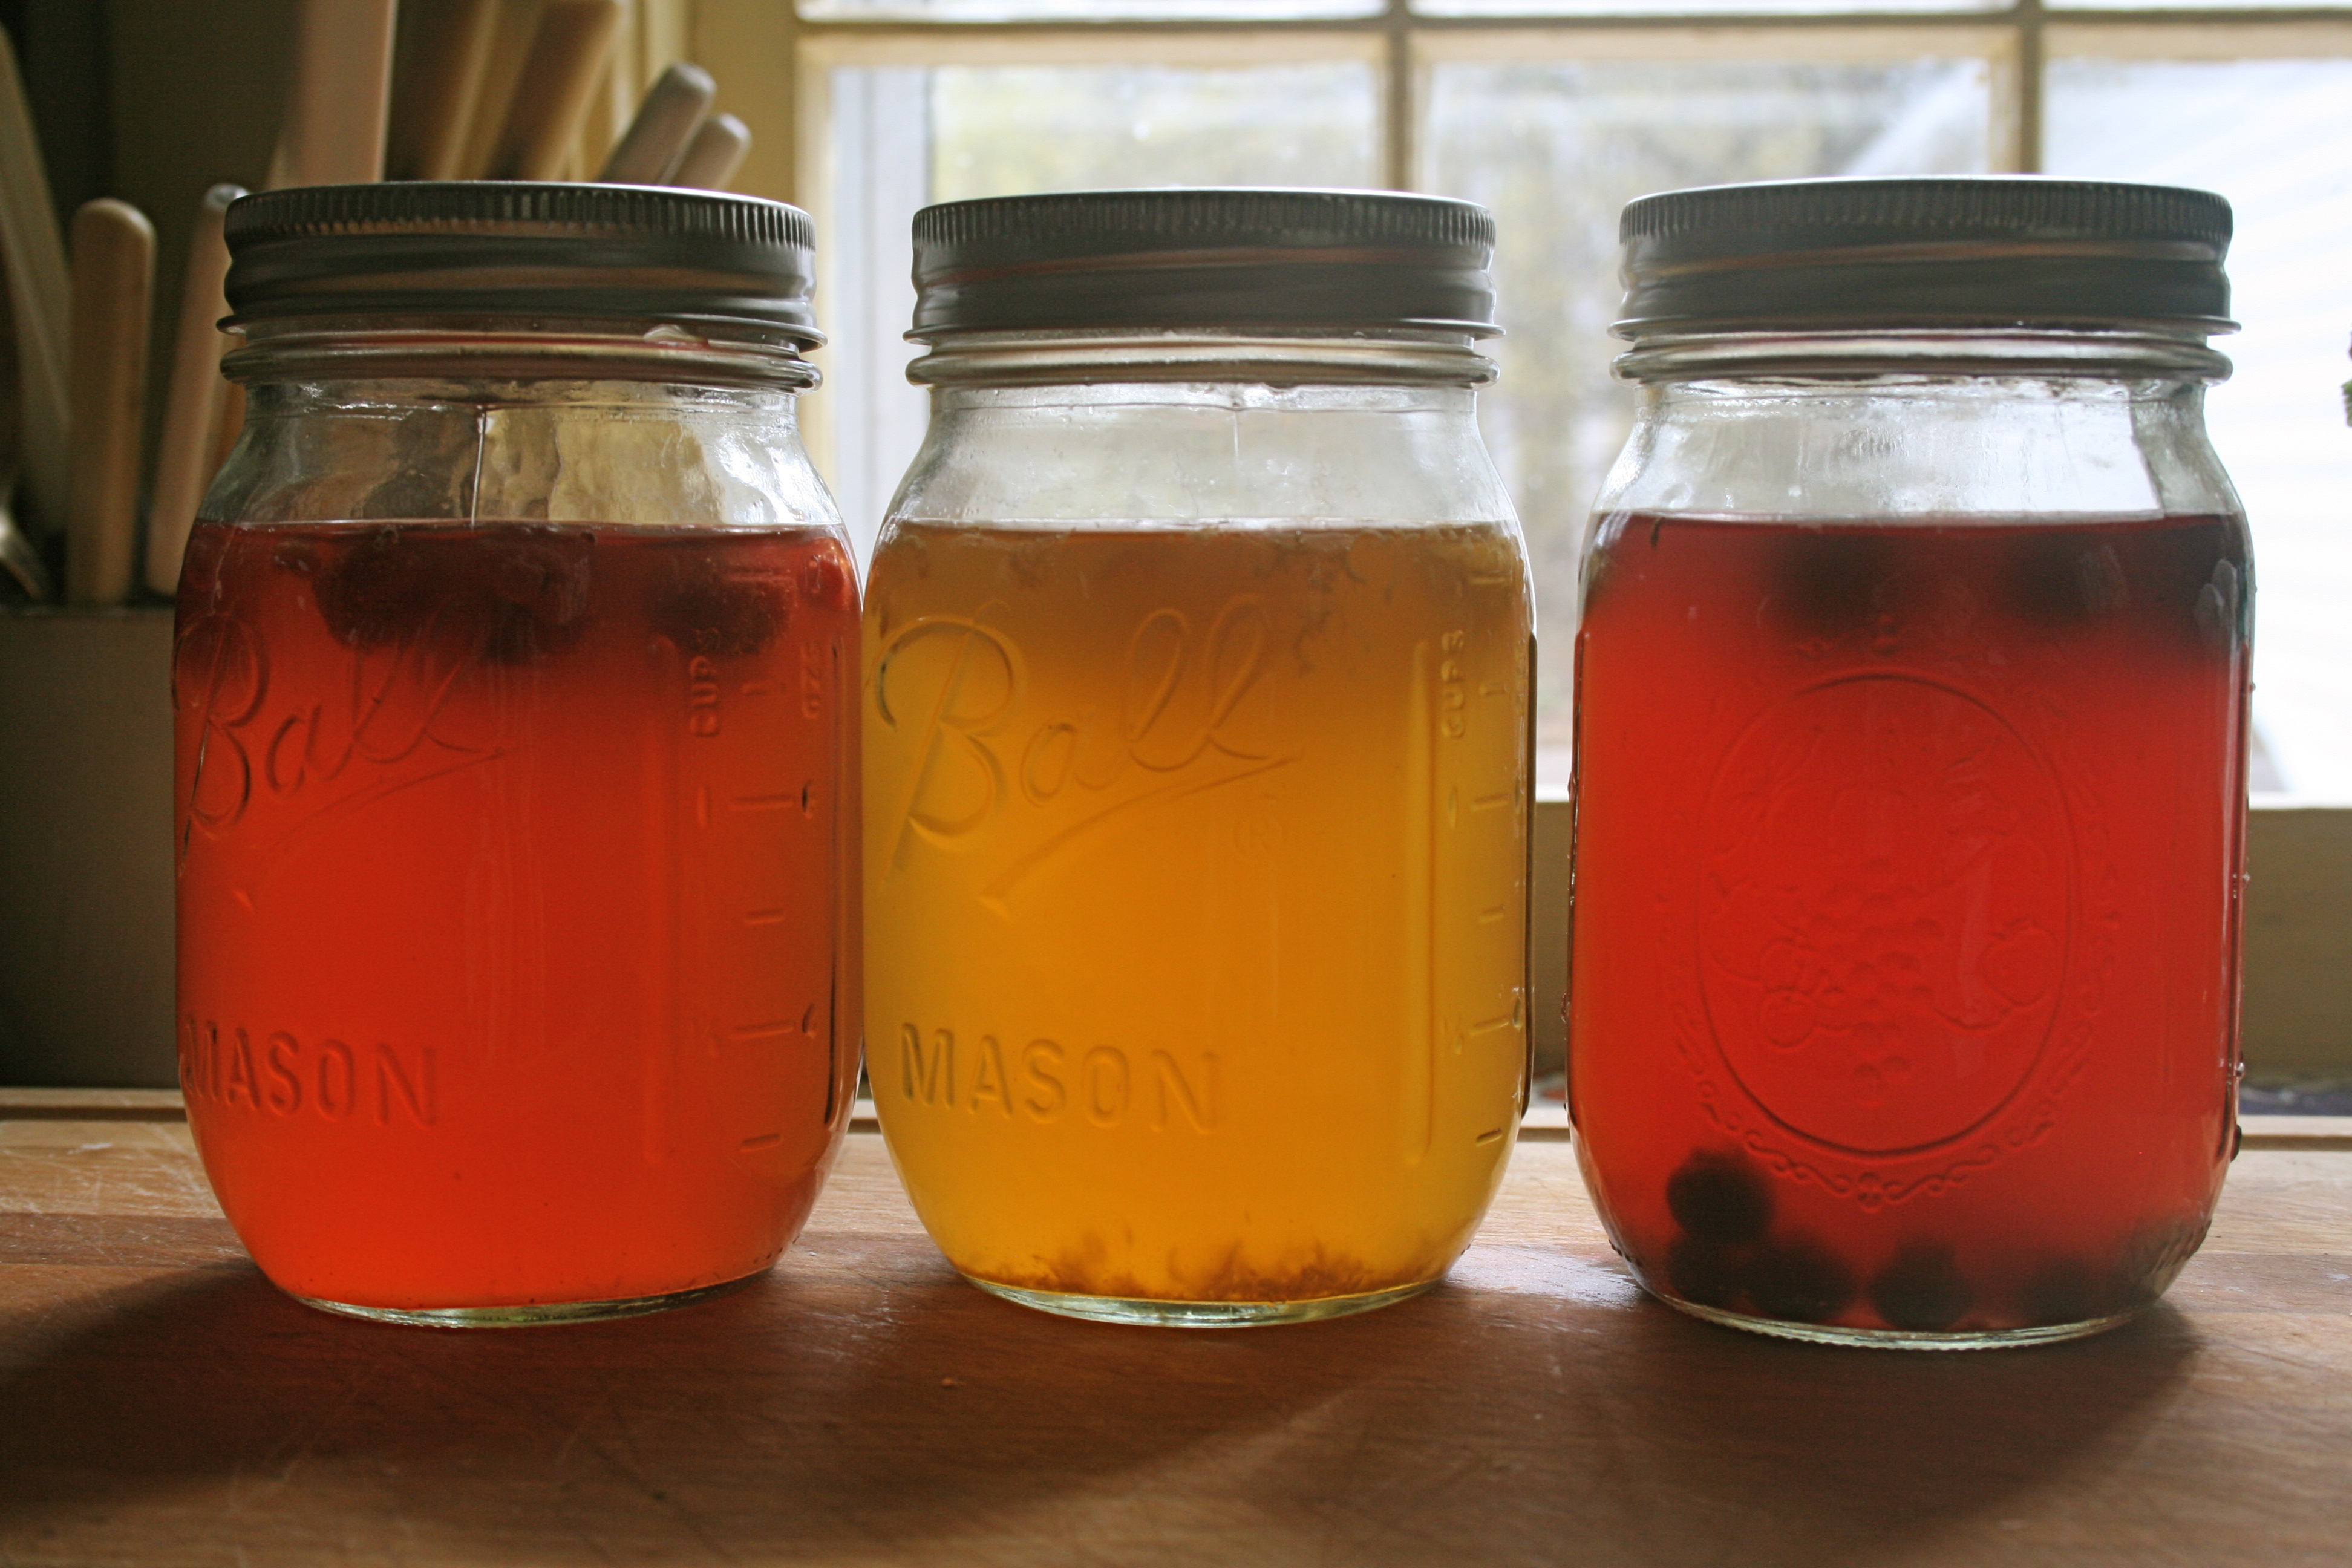 I am interested in the rules/regulations of using essential oils in kombucha?